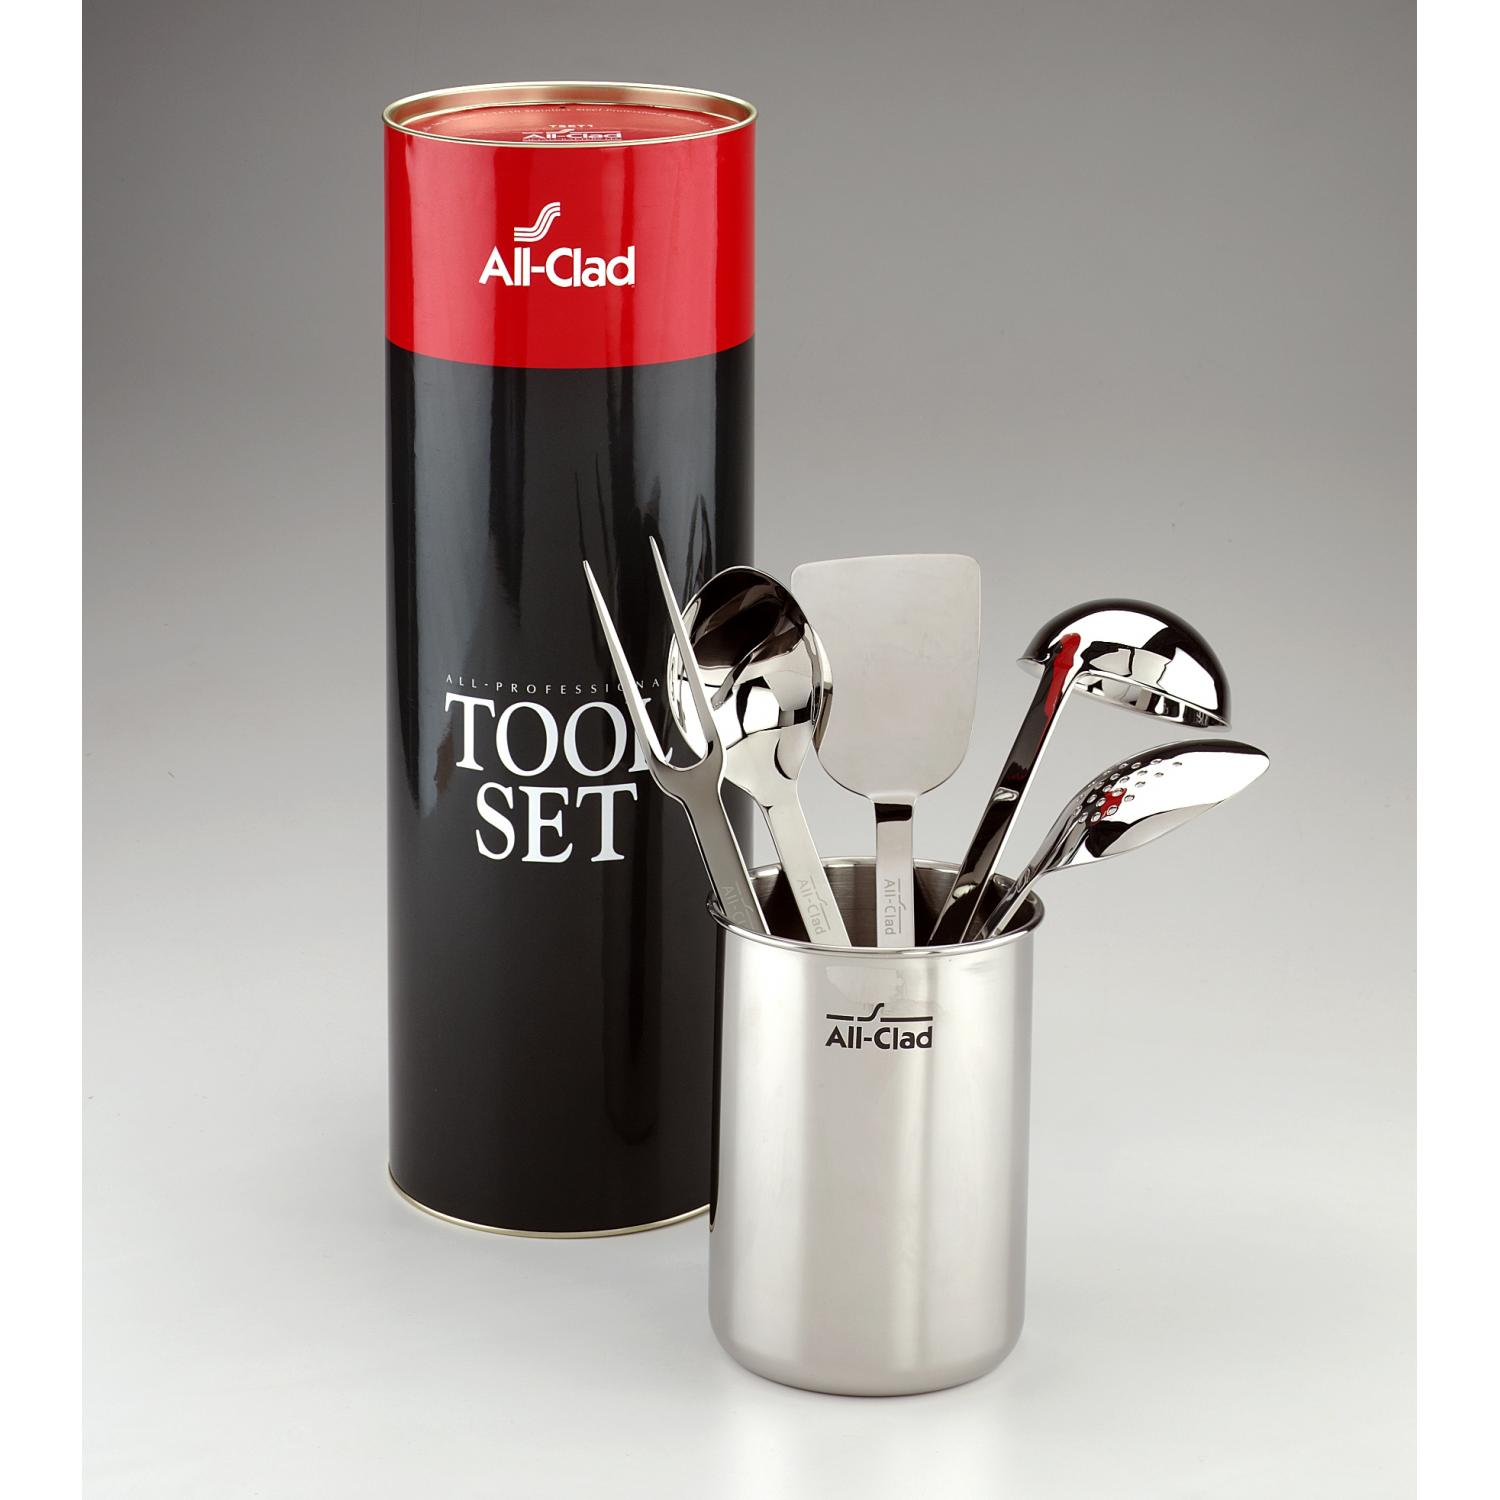 All-Clad Stainless 6-Piece Kitchen Tool Set